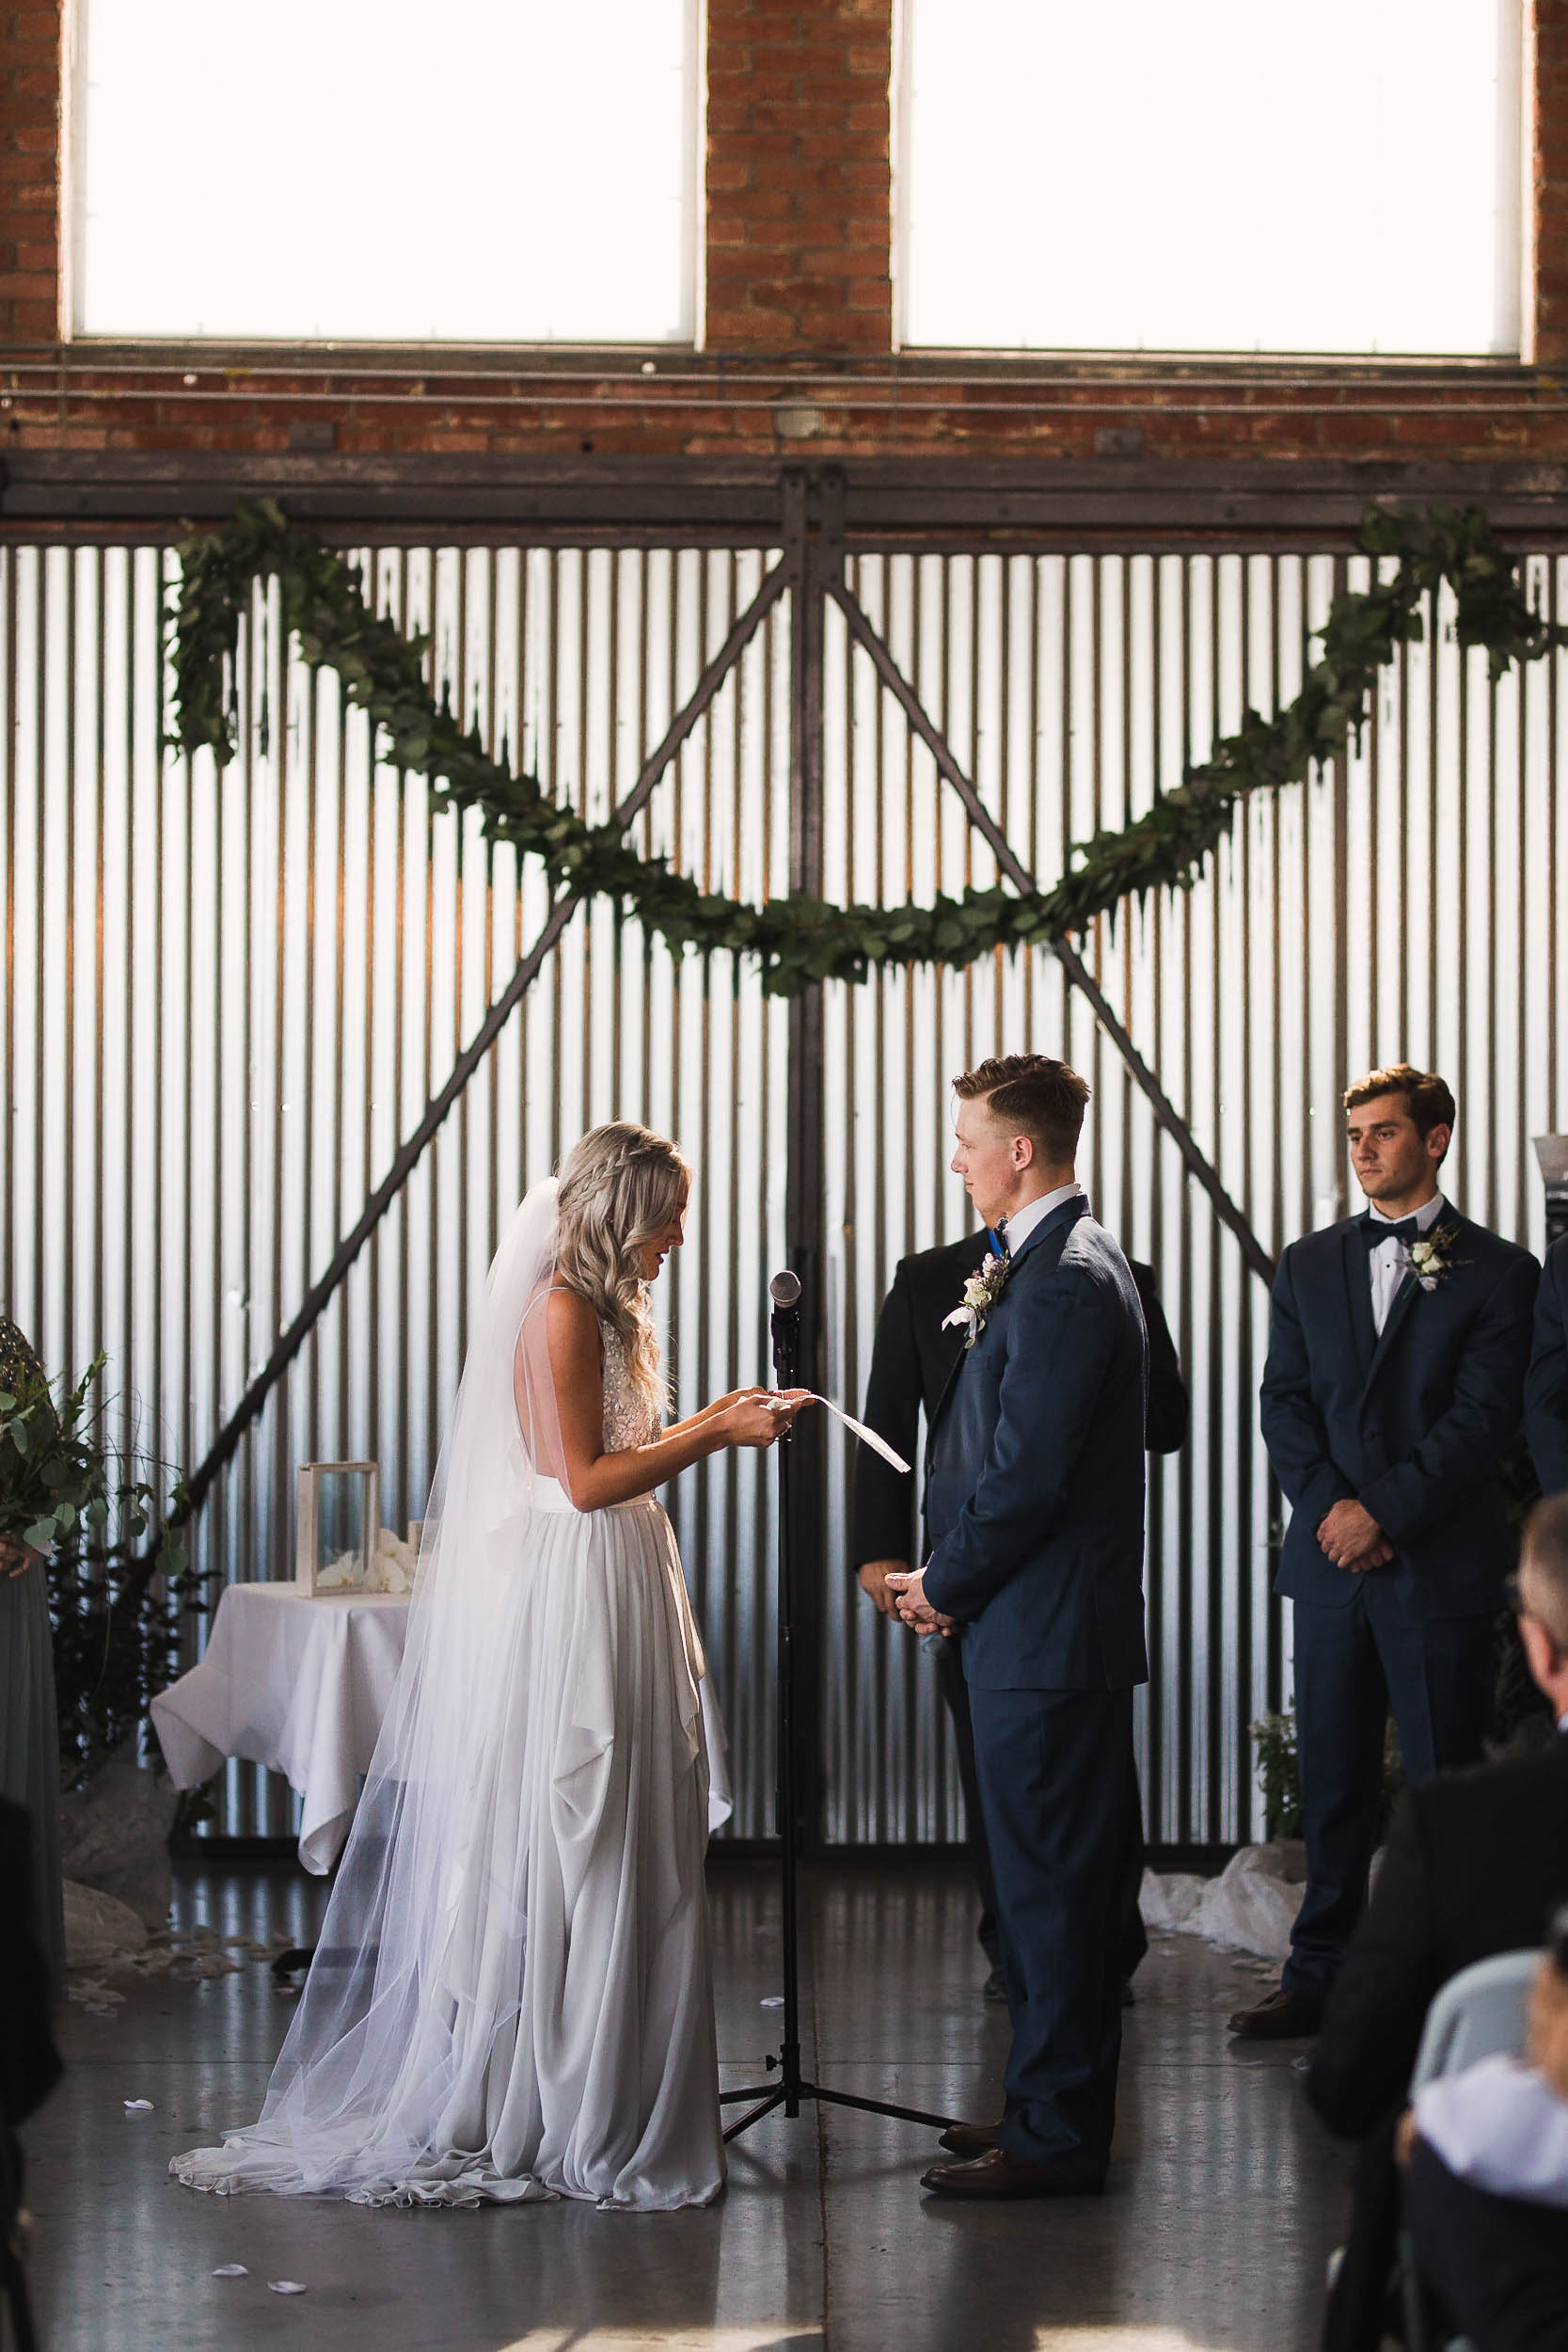 Bride reading vows to her groom